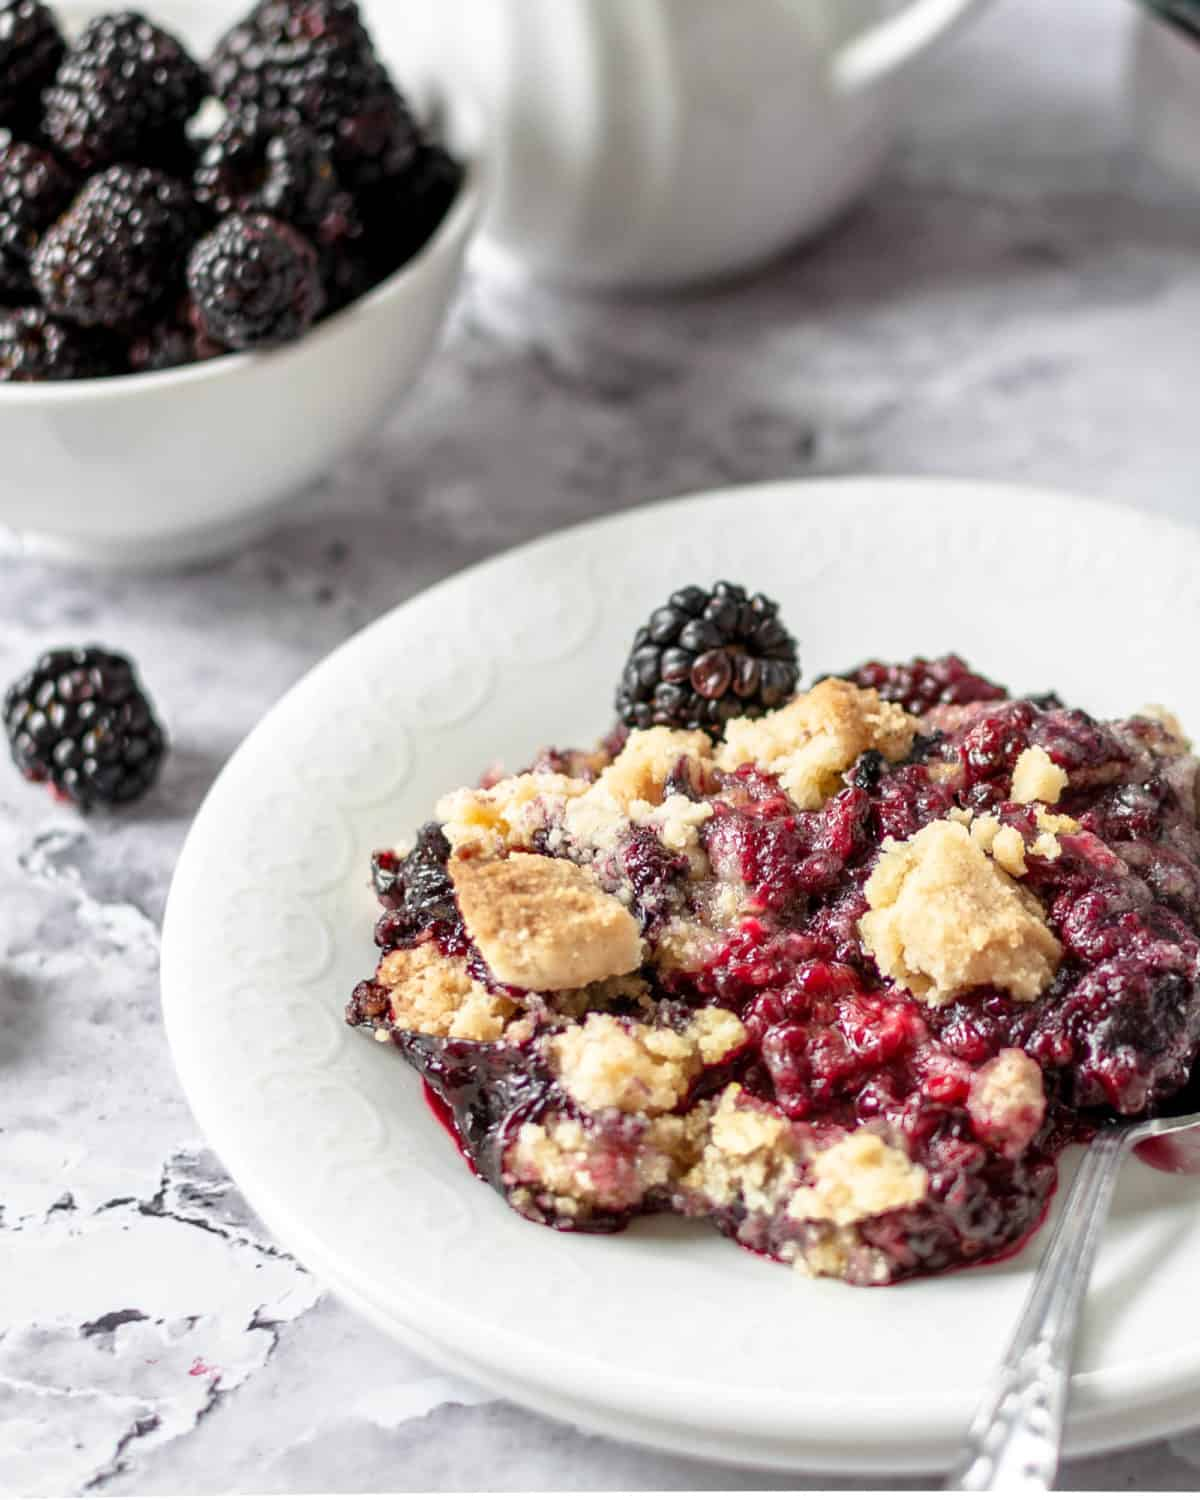 A large scoop of blackberry cobbler on a white plate with a spoon.